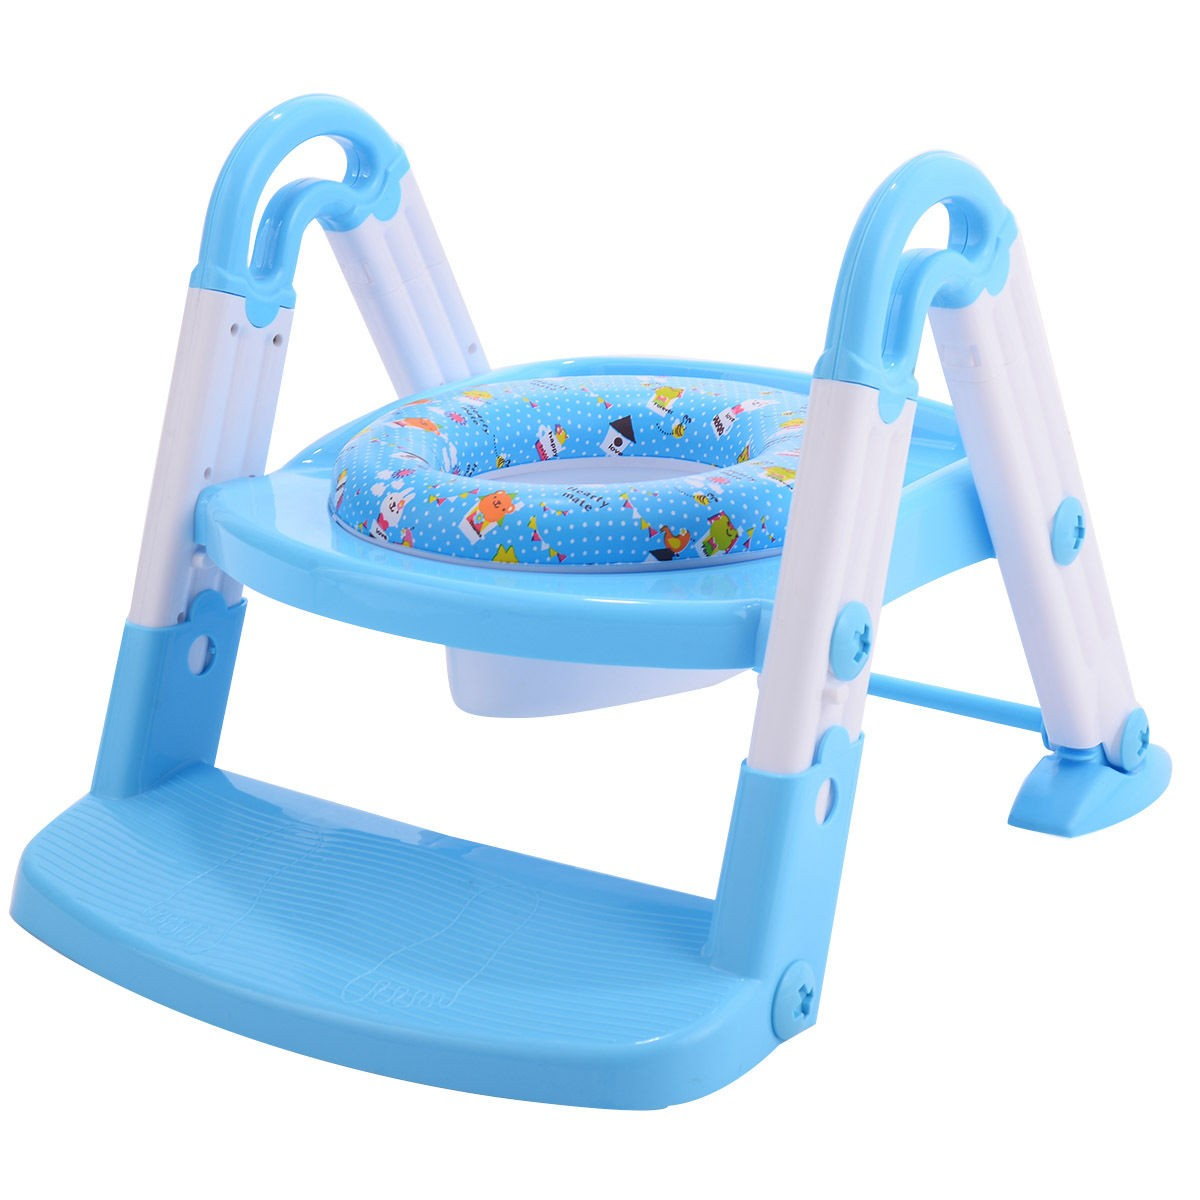 potty chairs for babies unique office chair 3 in 1 fold baby training toilet seat step